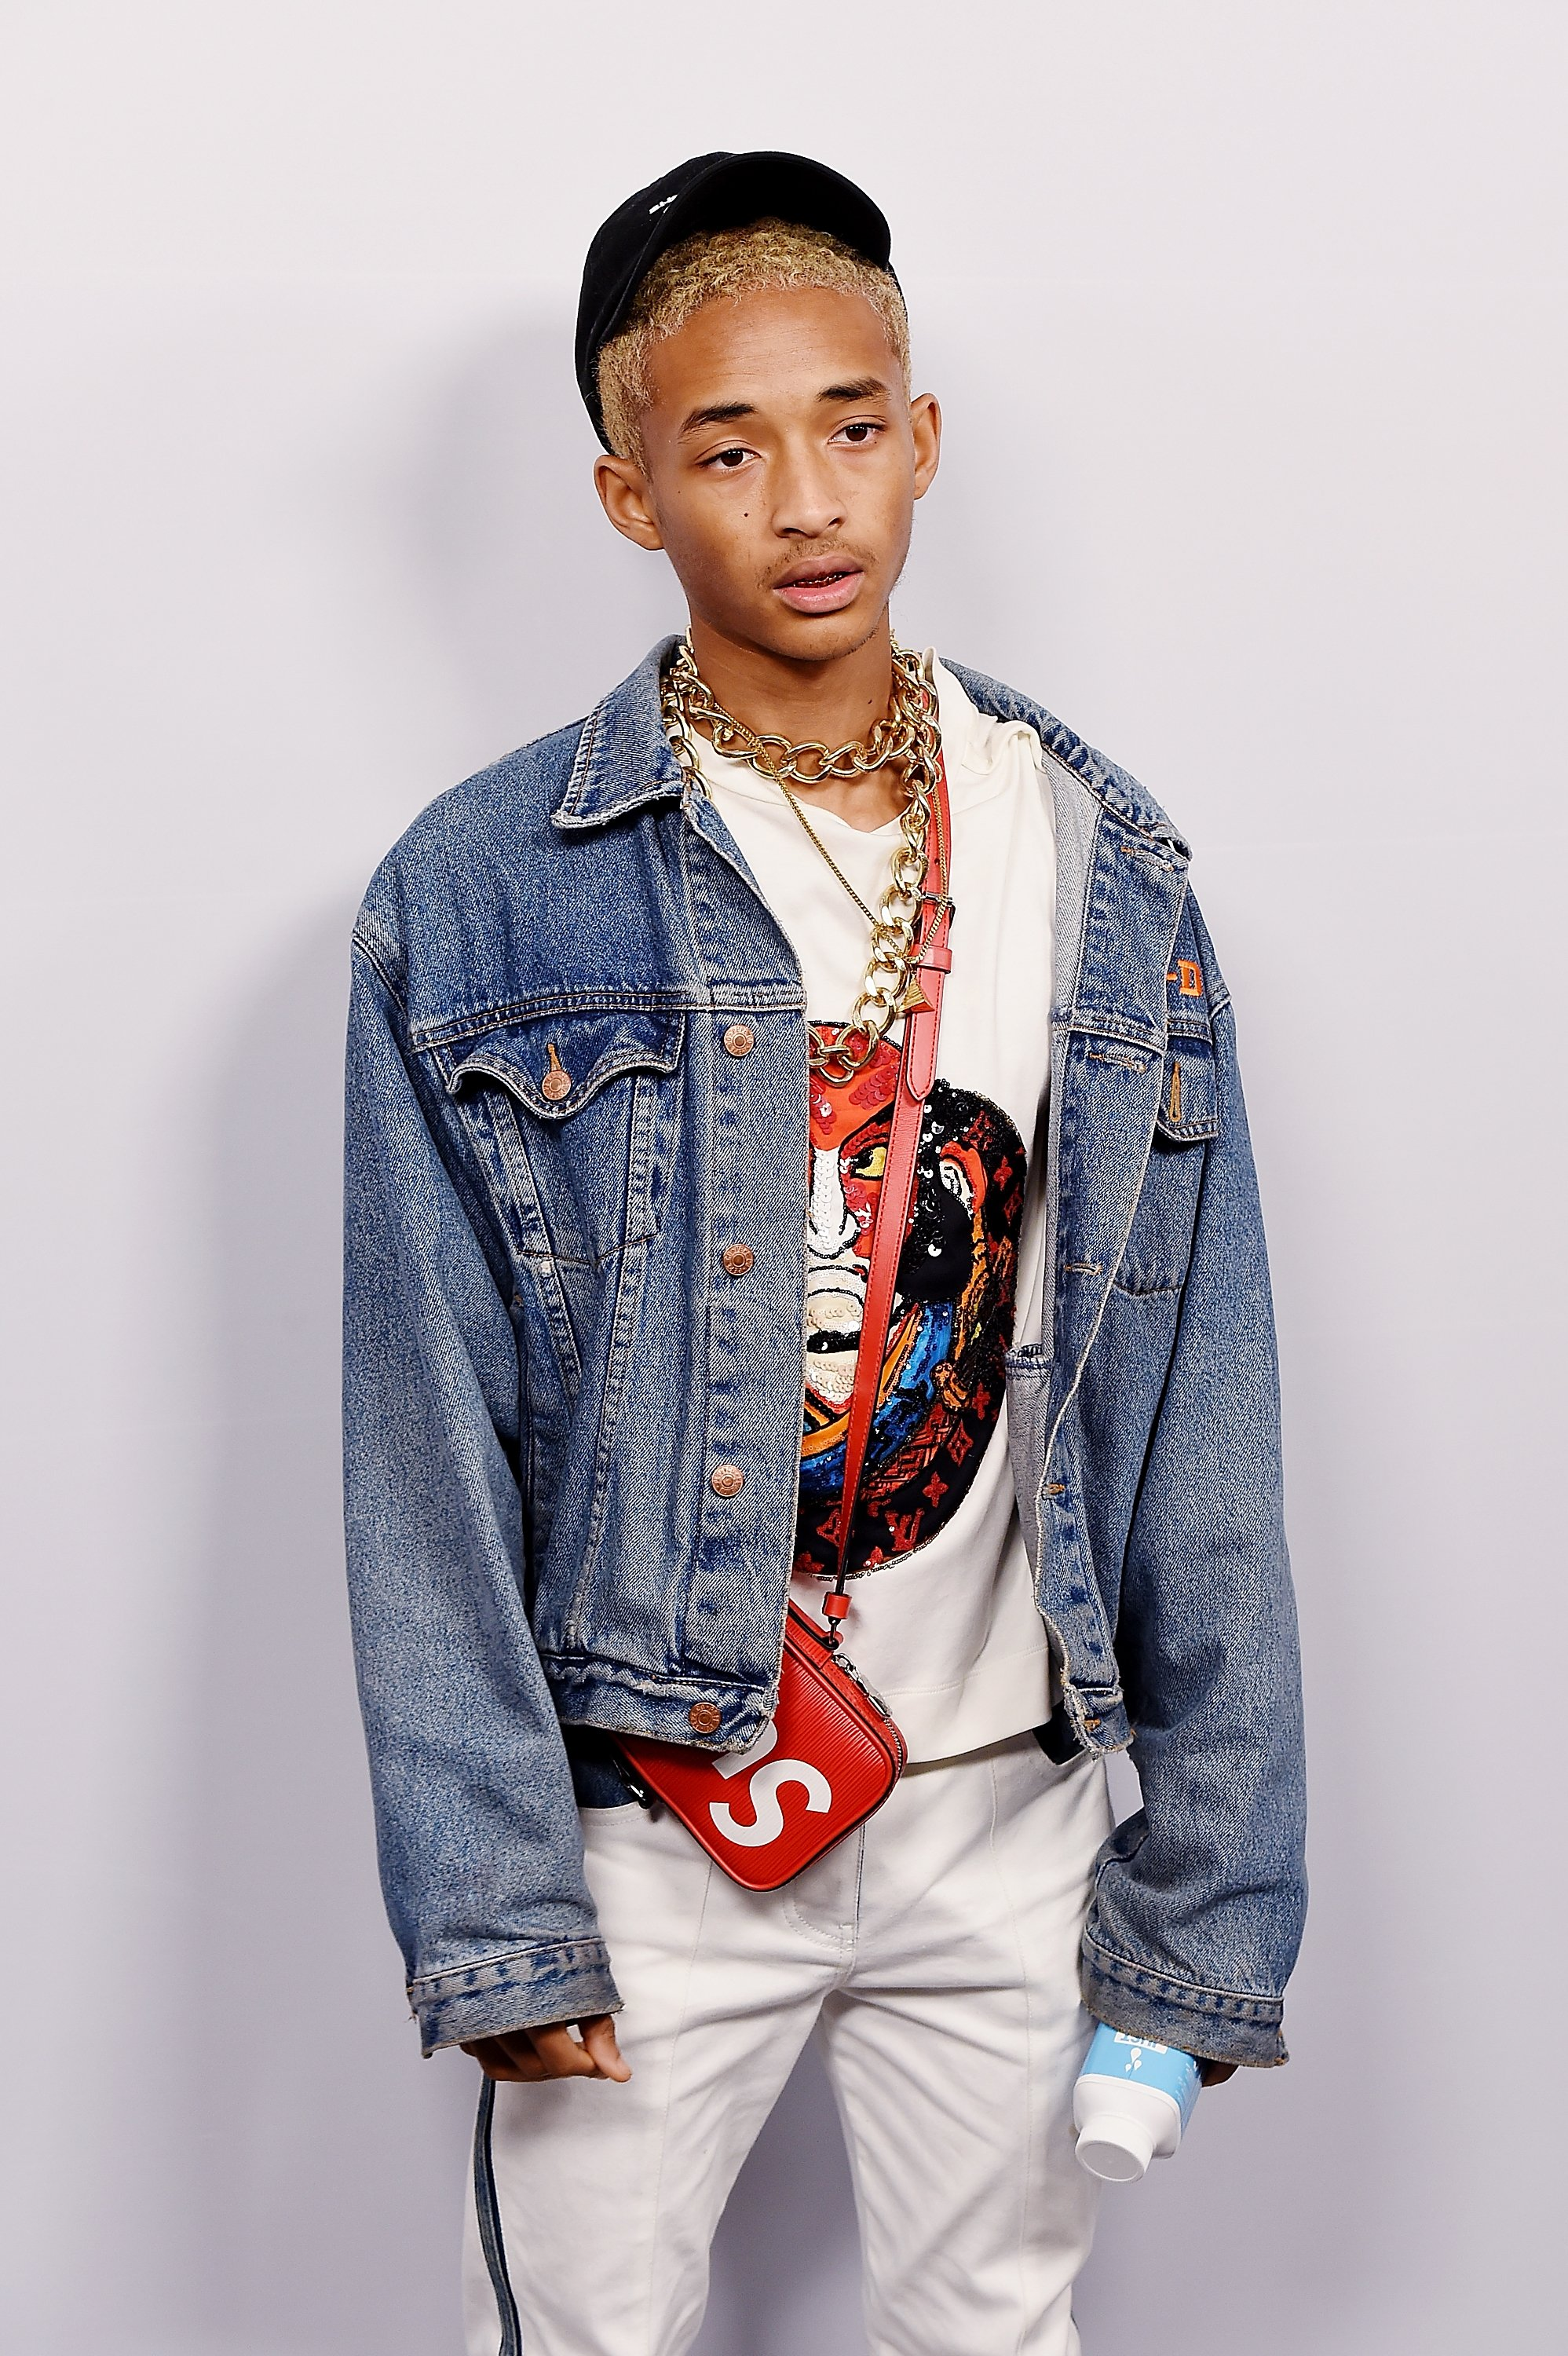 Image Credits: Getty Images / Nicholas Hunt | Jaden Smith attends the Volez, Voguez, Voyagez - Louis Vuitton Exhibition Opening on October 26, 2017 in New York City.